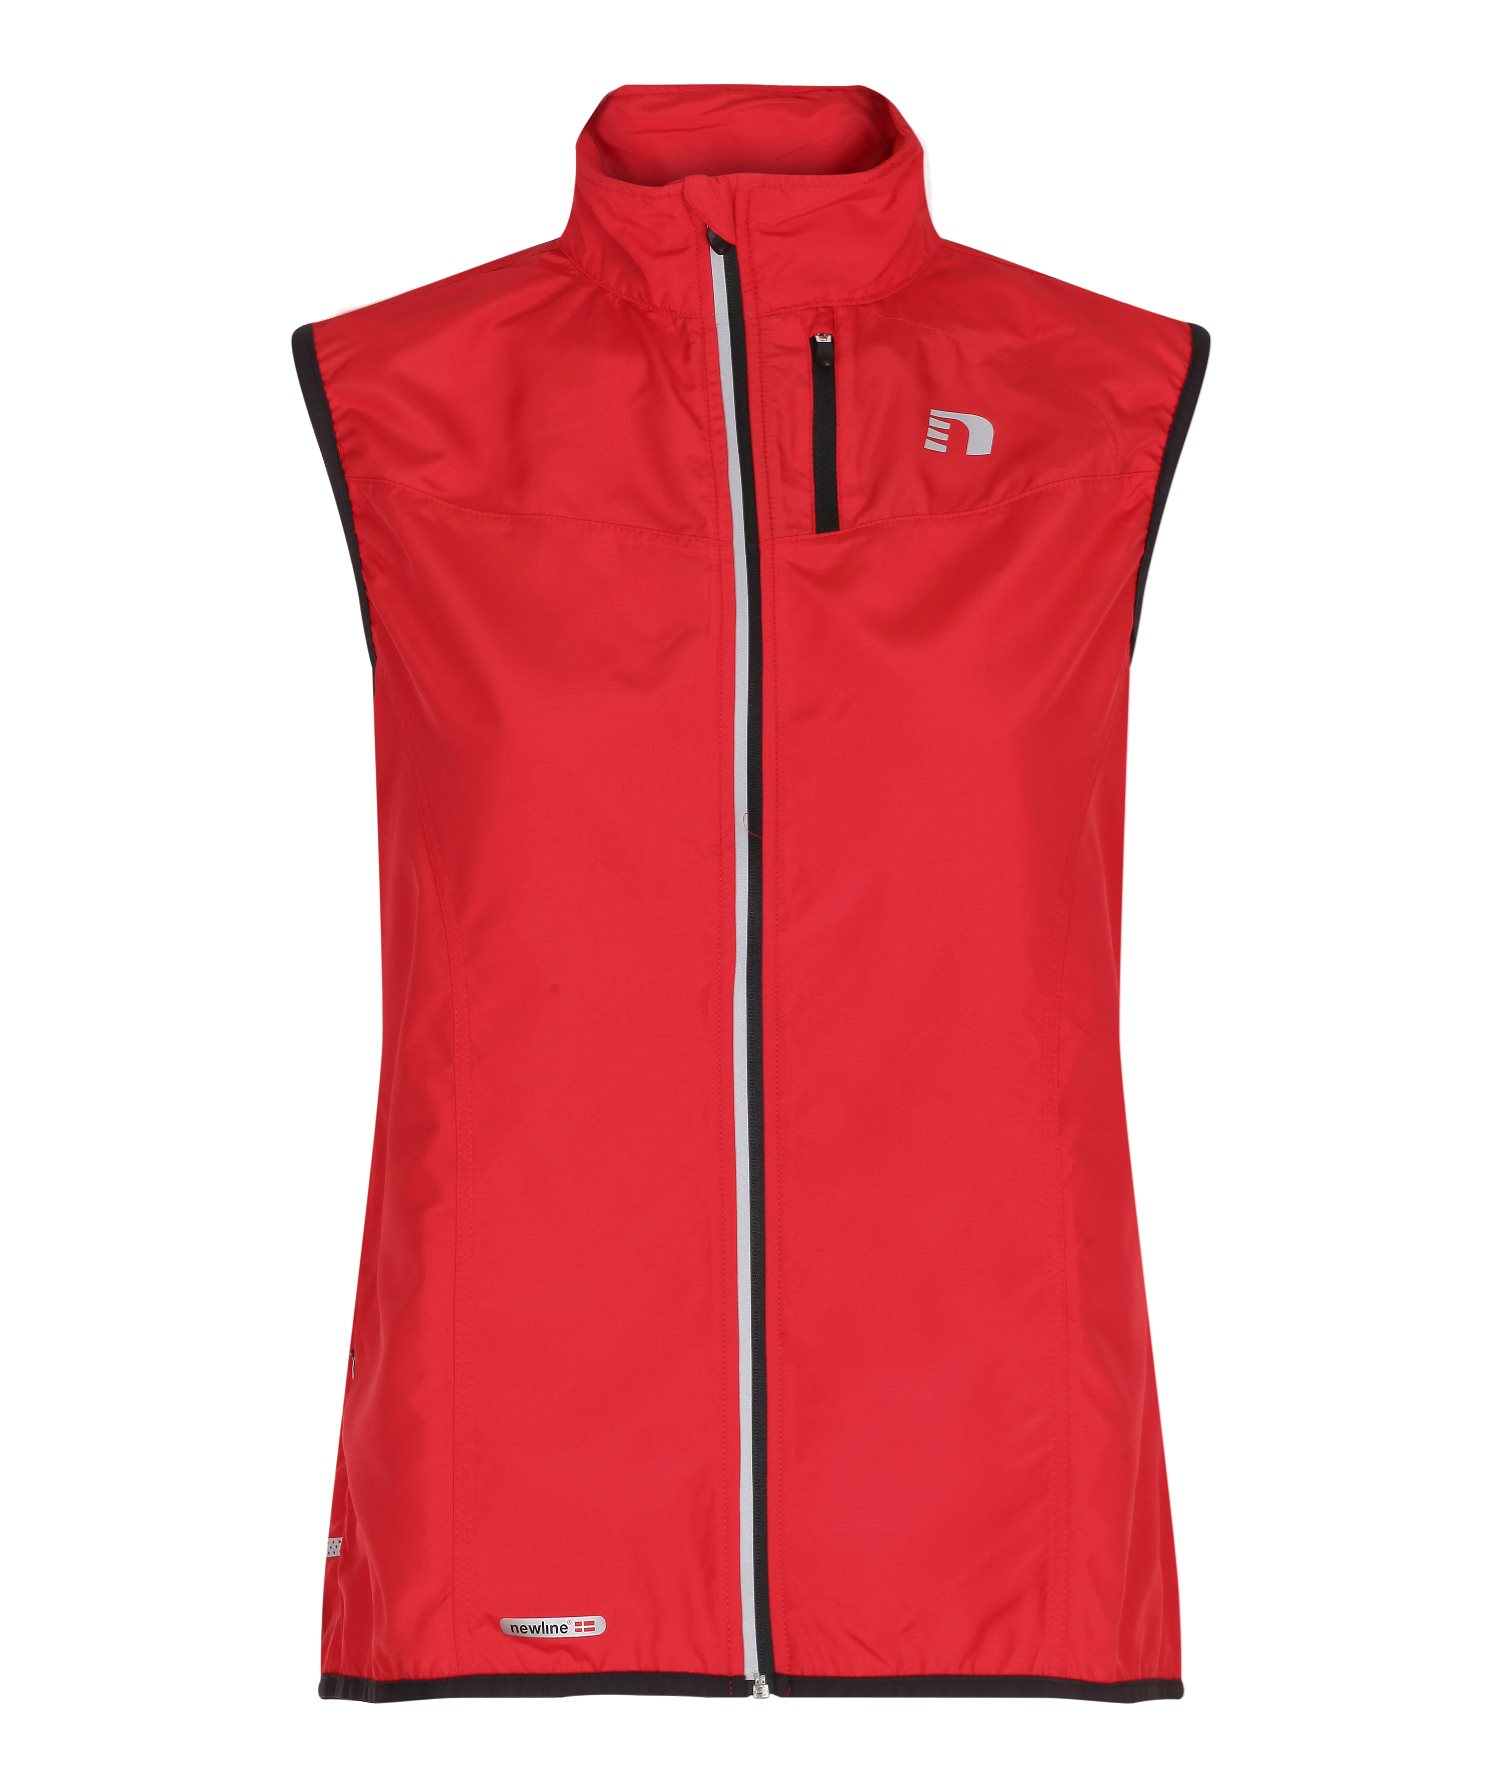 Newline Base Tech Vest - Damen